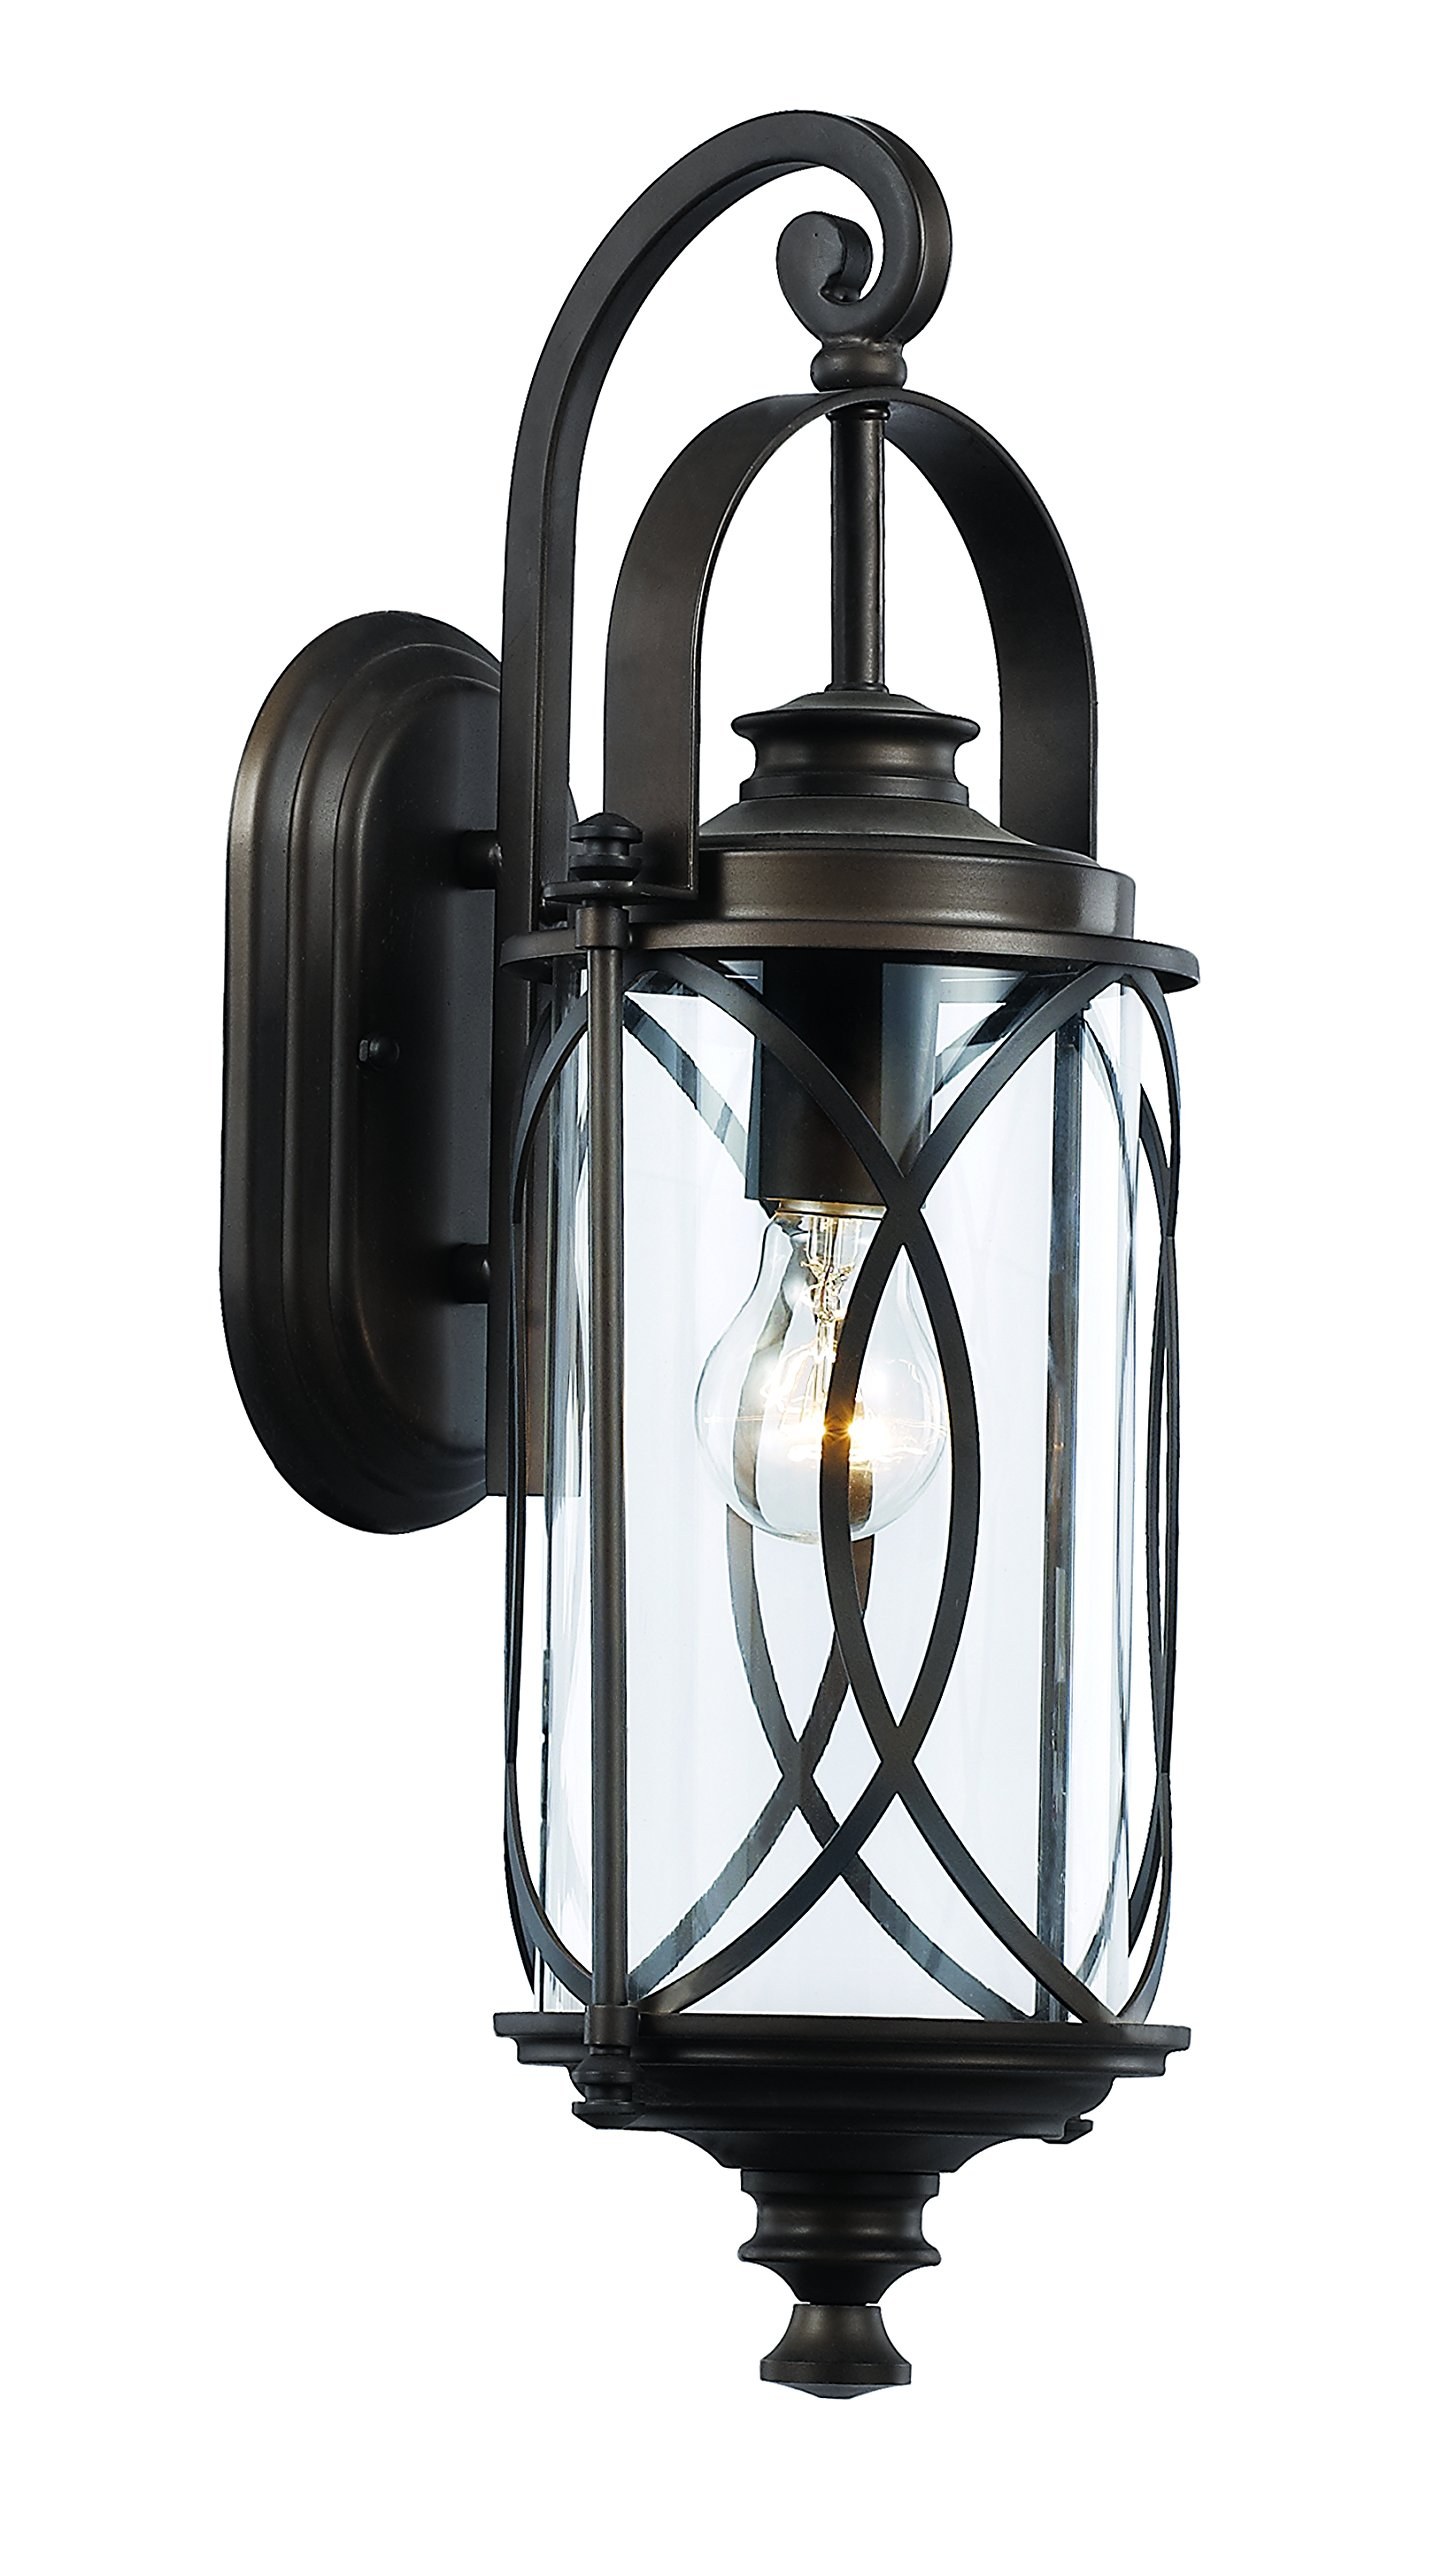 Trans Globe Lighting 40410 ROB Outdoor Fiesta 18.75'' Wall Lantern, Rubbed Oil Bronze